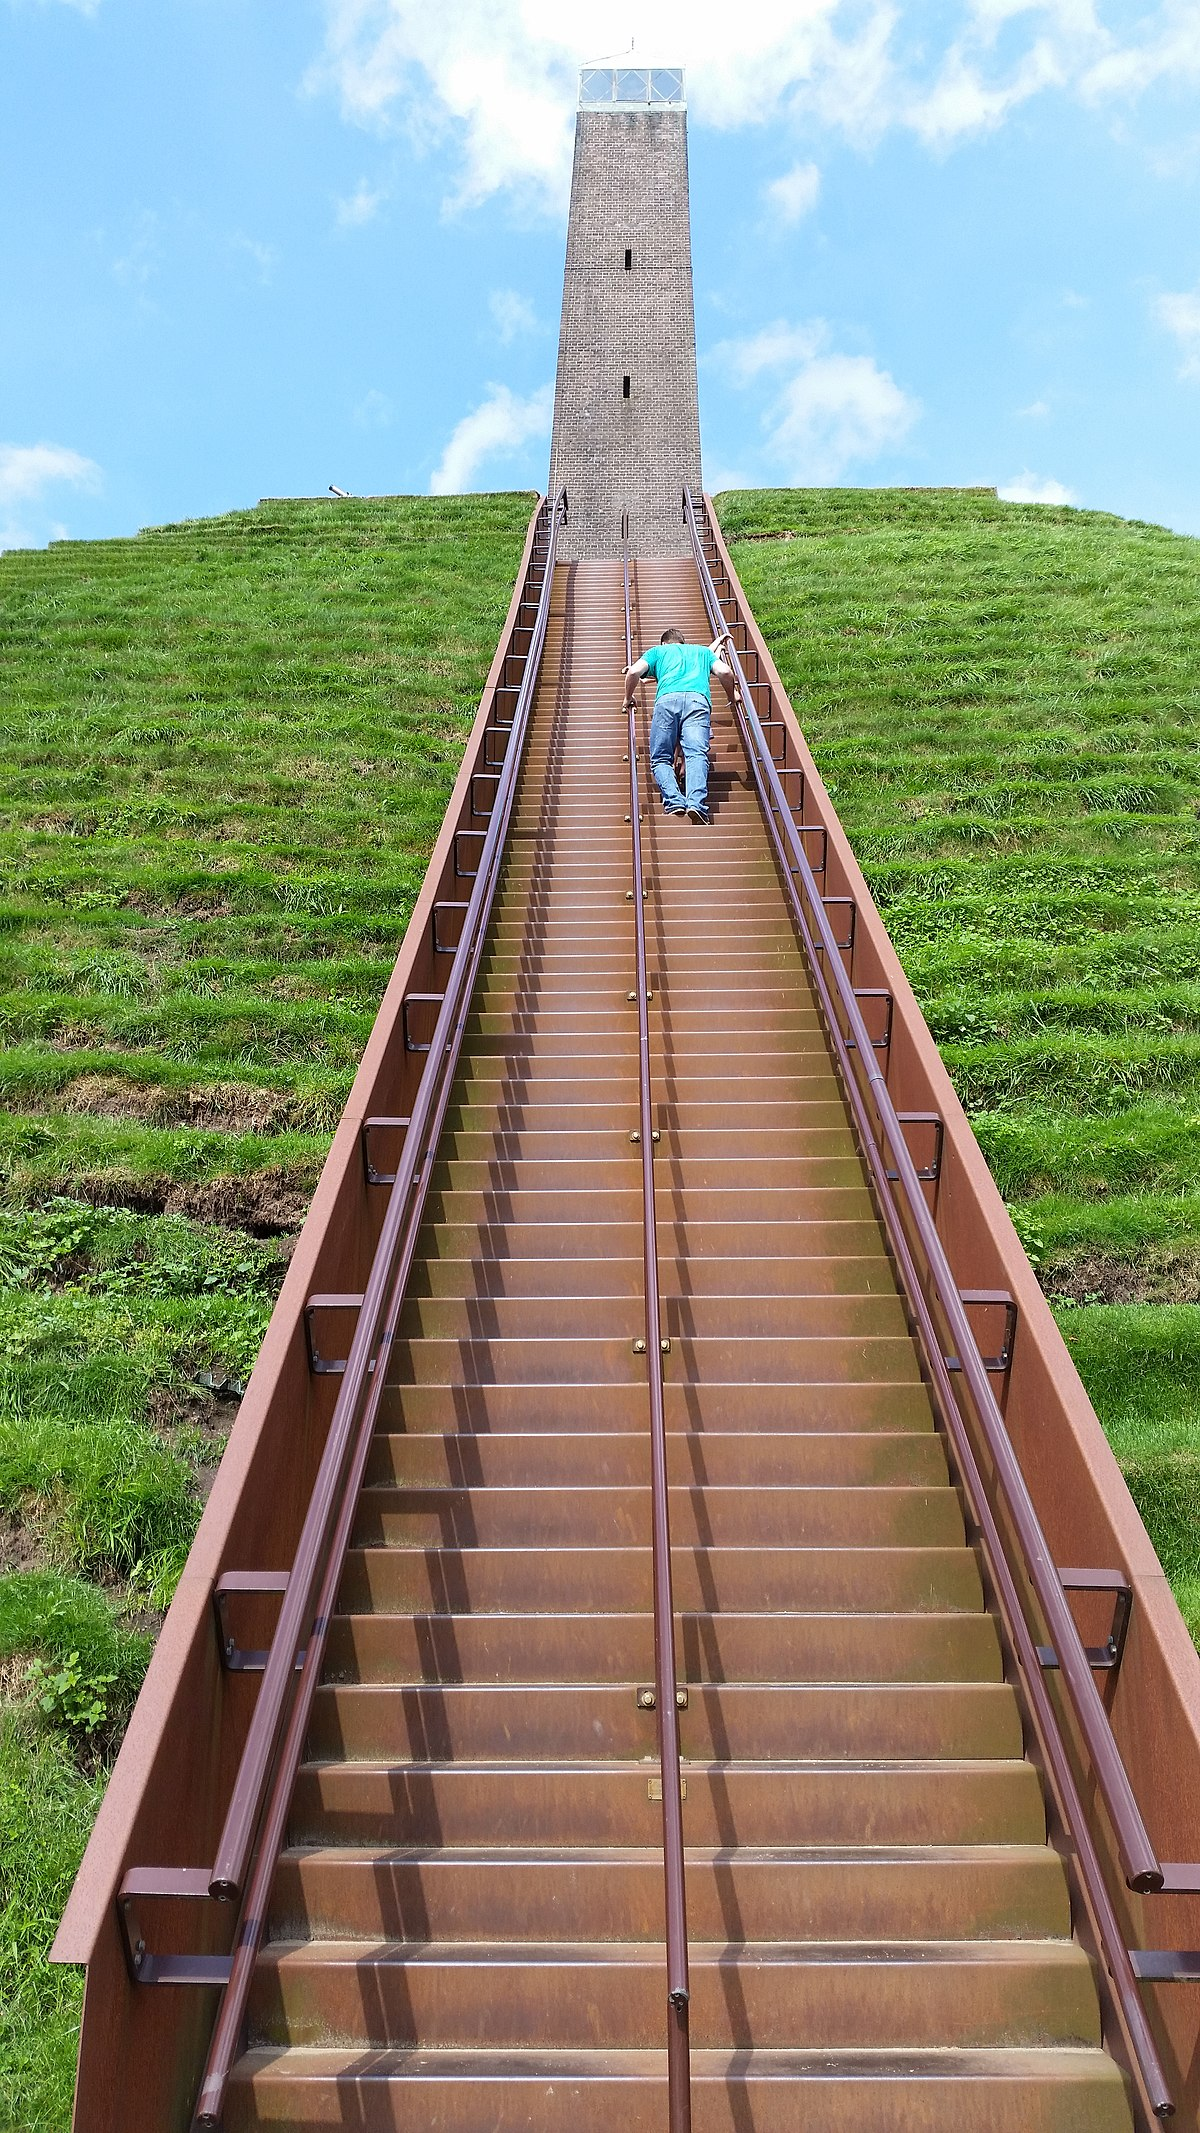 Utrecht Hill Ridge – Travel guide at Wikivoyage